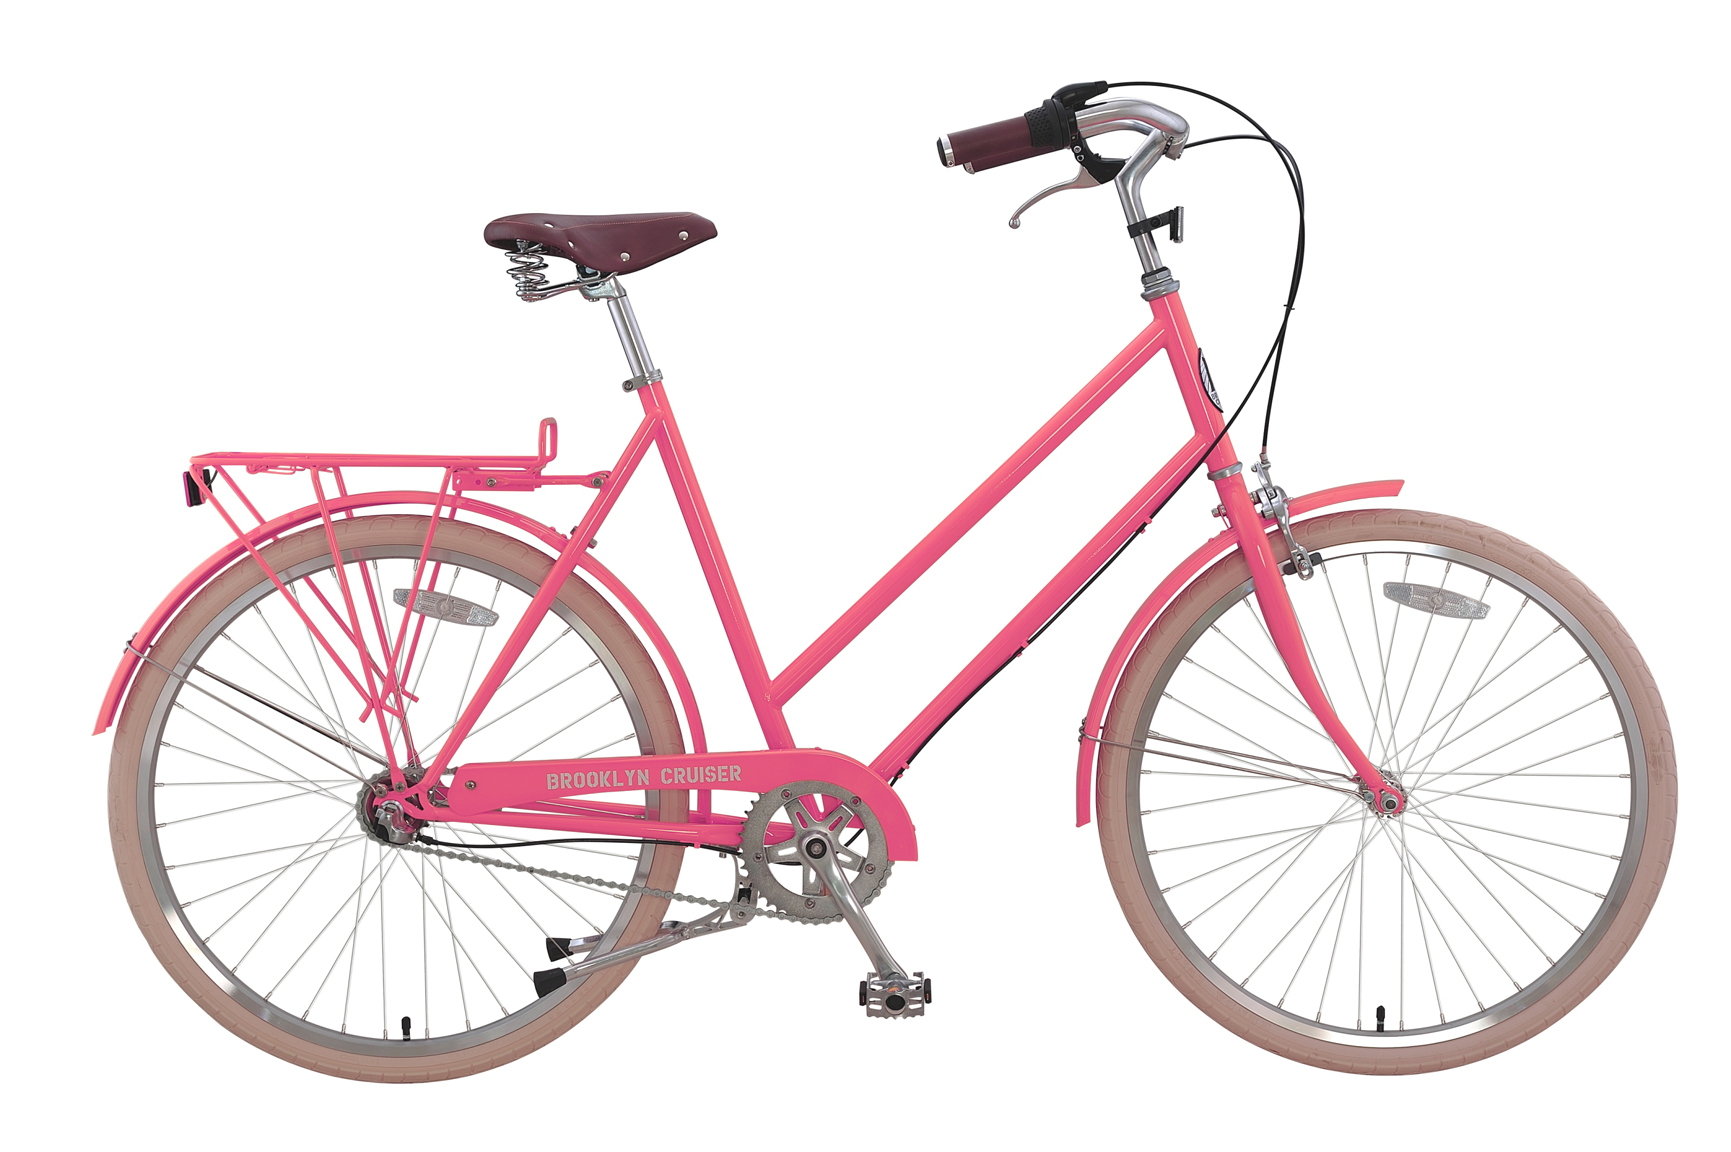 Pink Willow Cruiser, Brooklyn Bicycle Co.